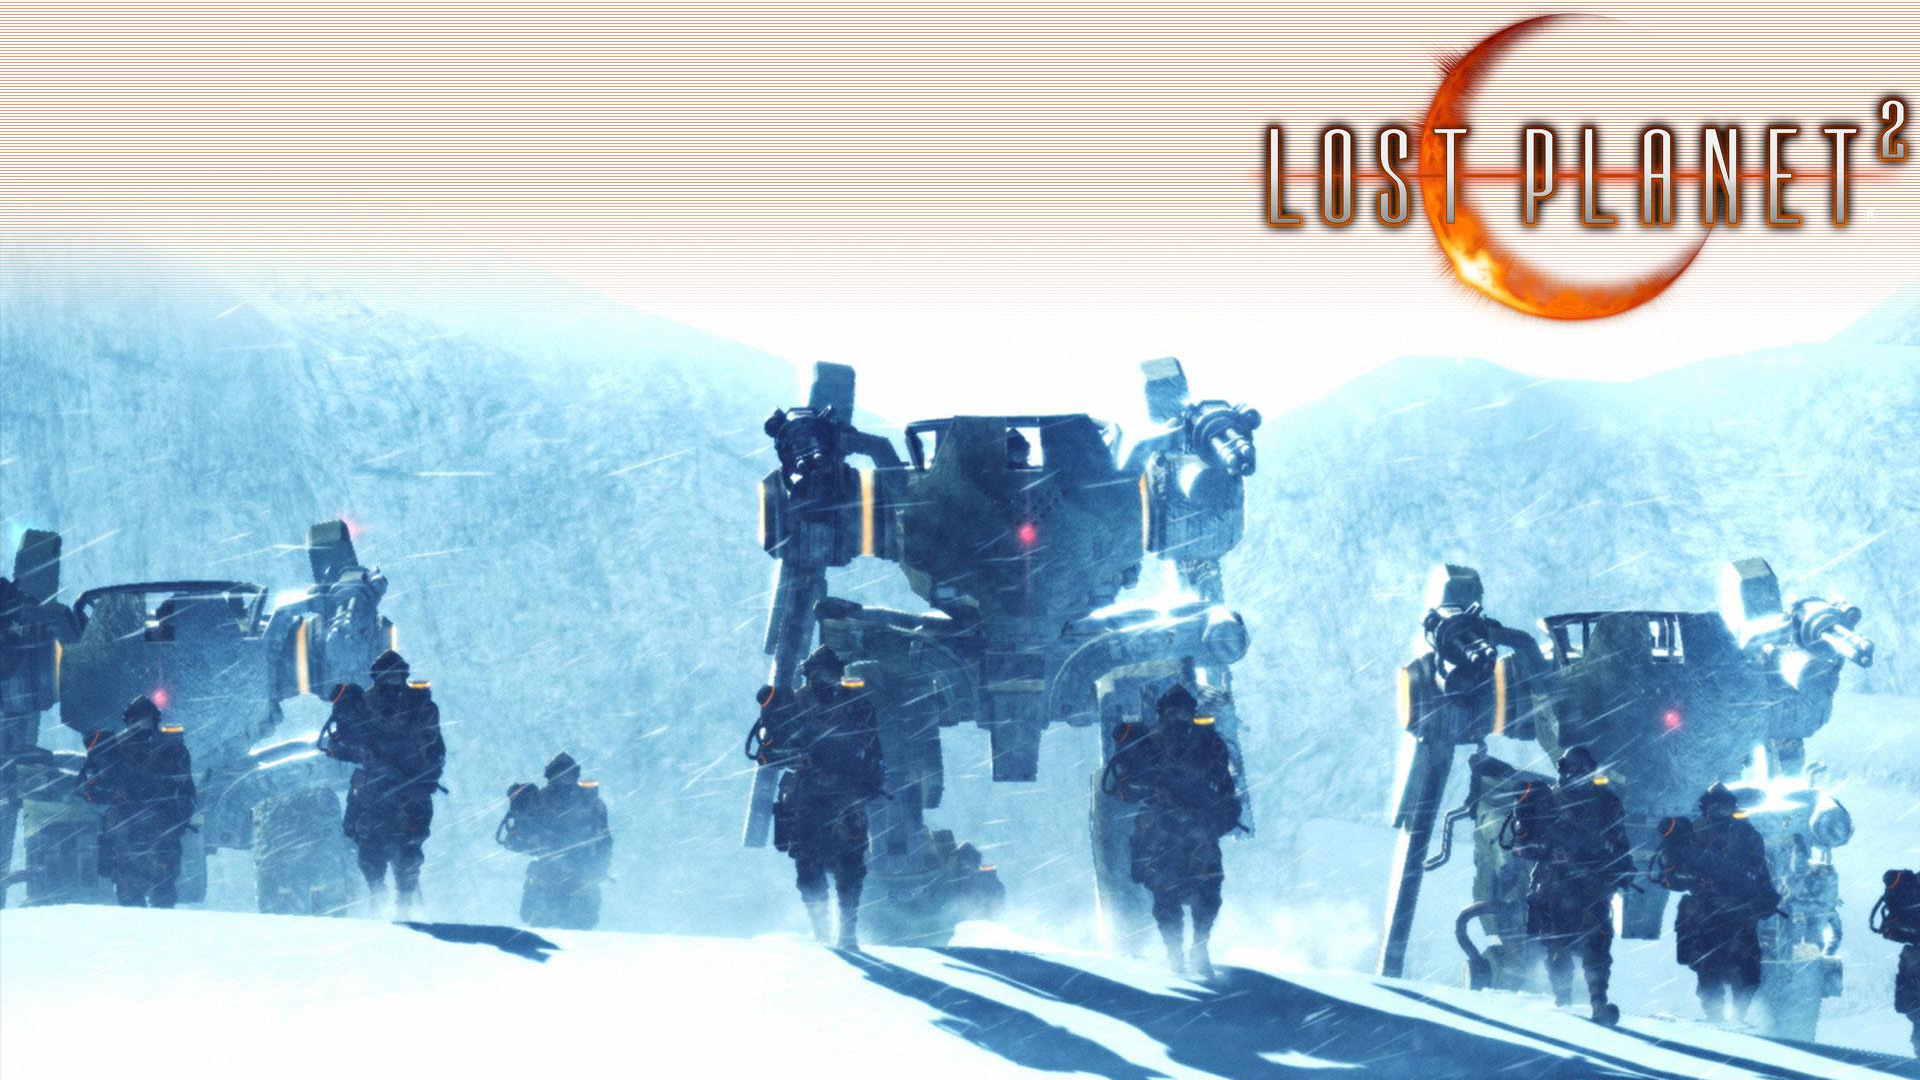 wallpapers of Lost Planet 2 You are downloading Lost Planet 2 1920x1080